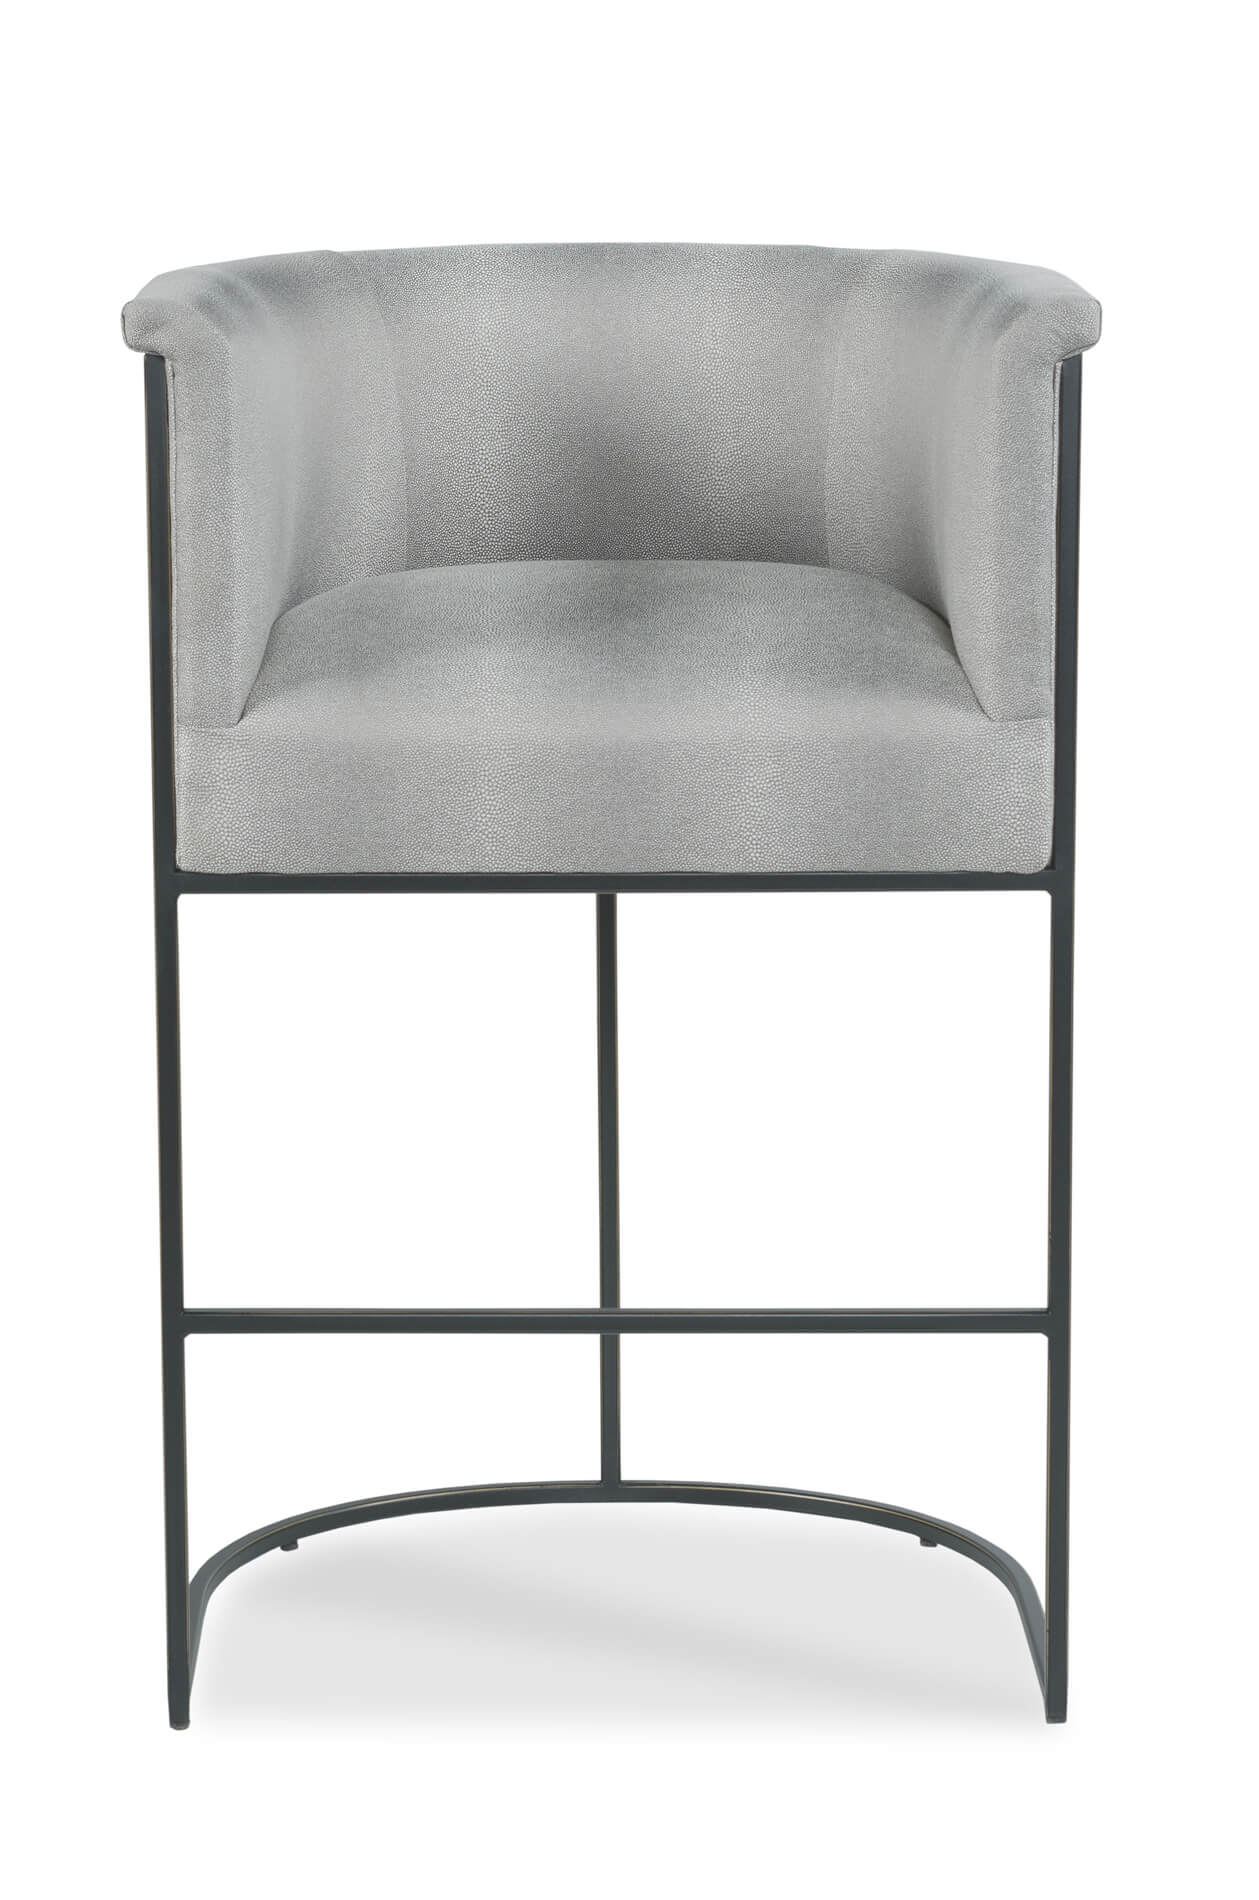 Buy Fairfield S Nolita Modern Upholstered Bronze Barstool